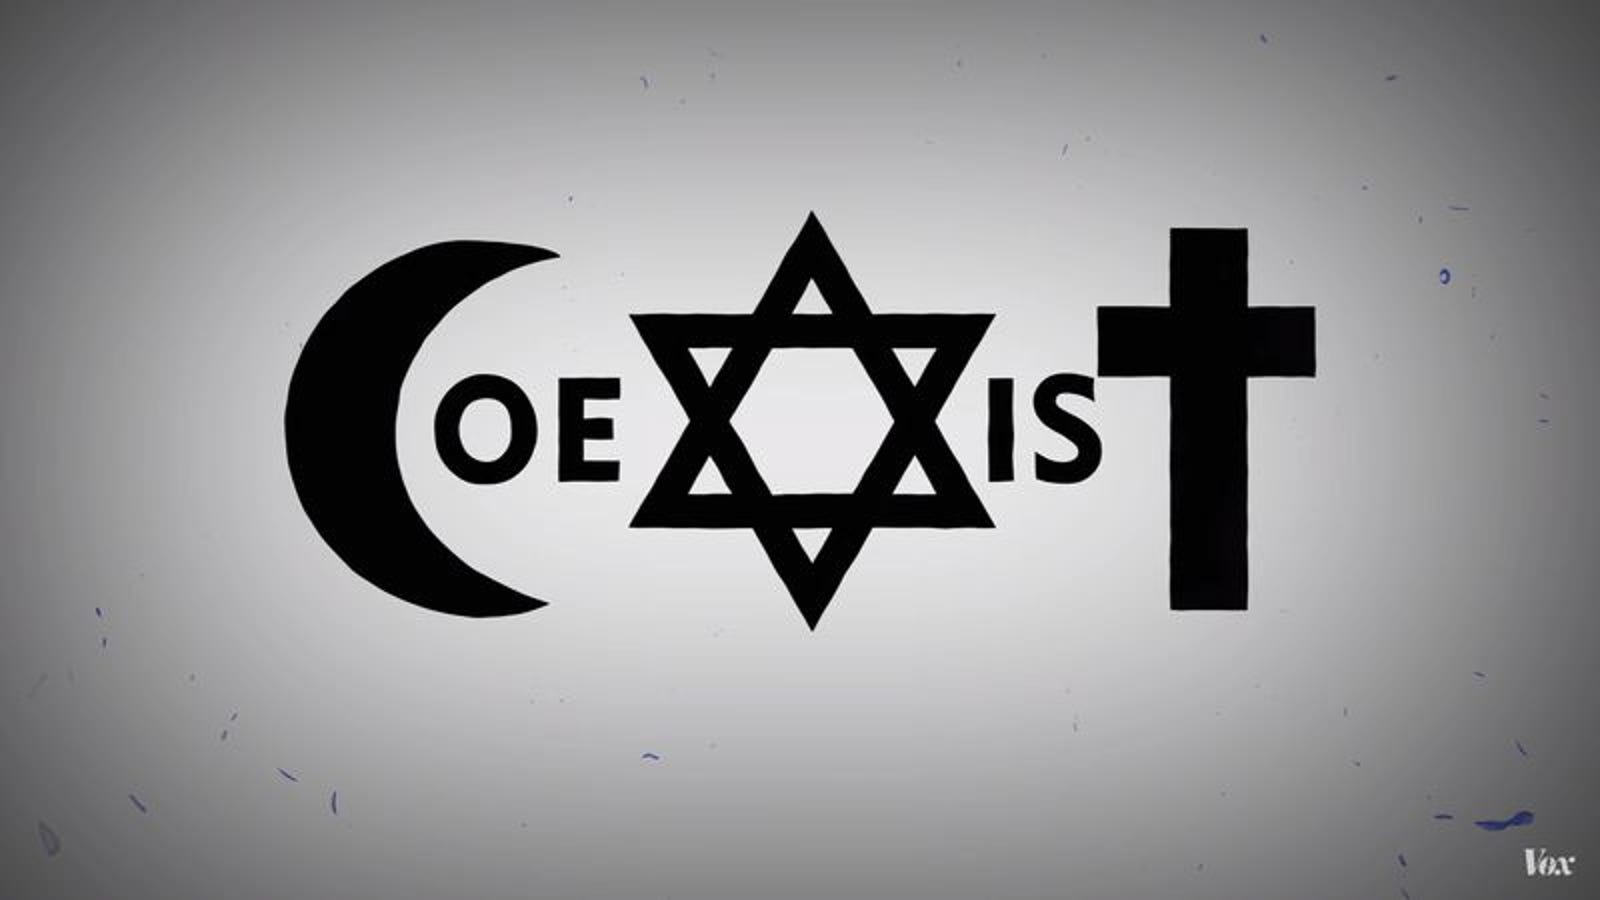 The contentious history of that peace promoting coexist logo